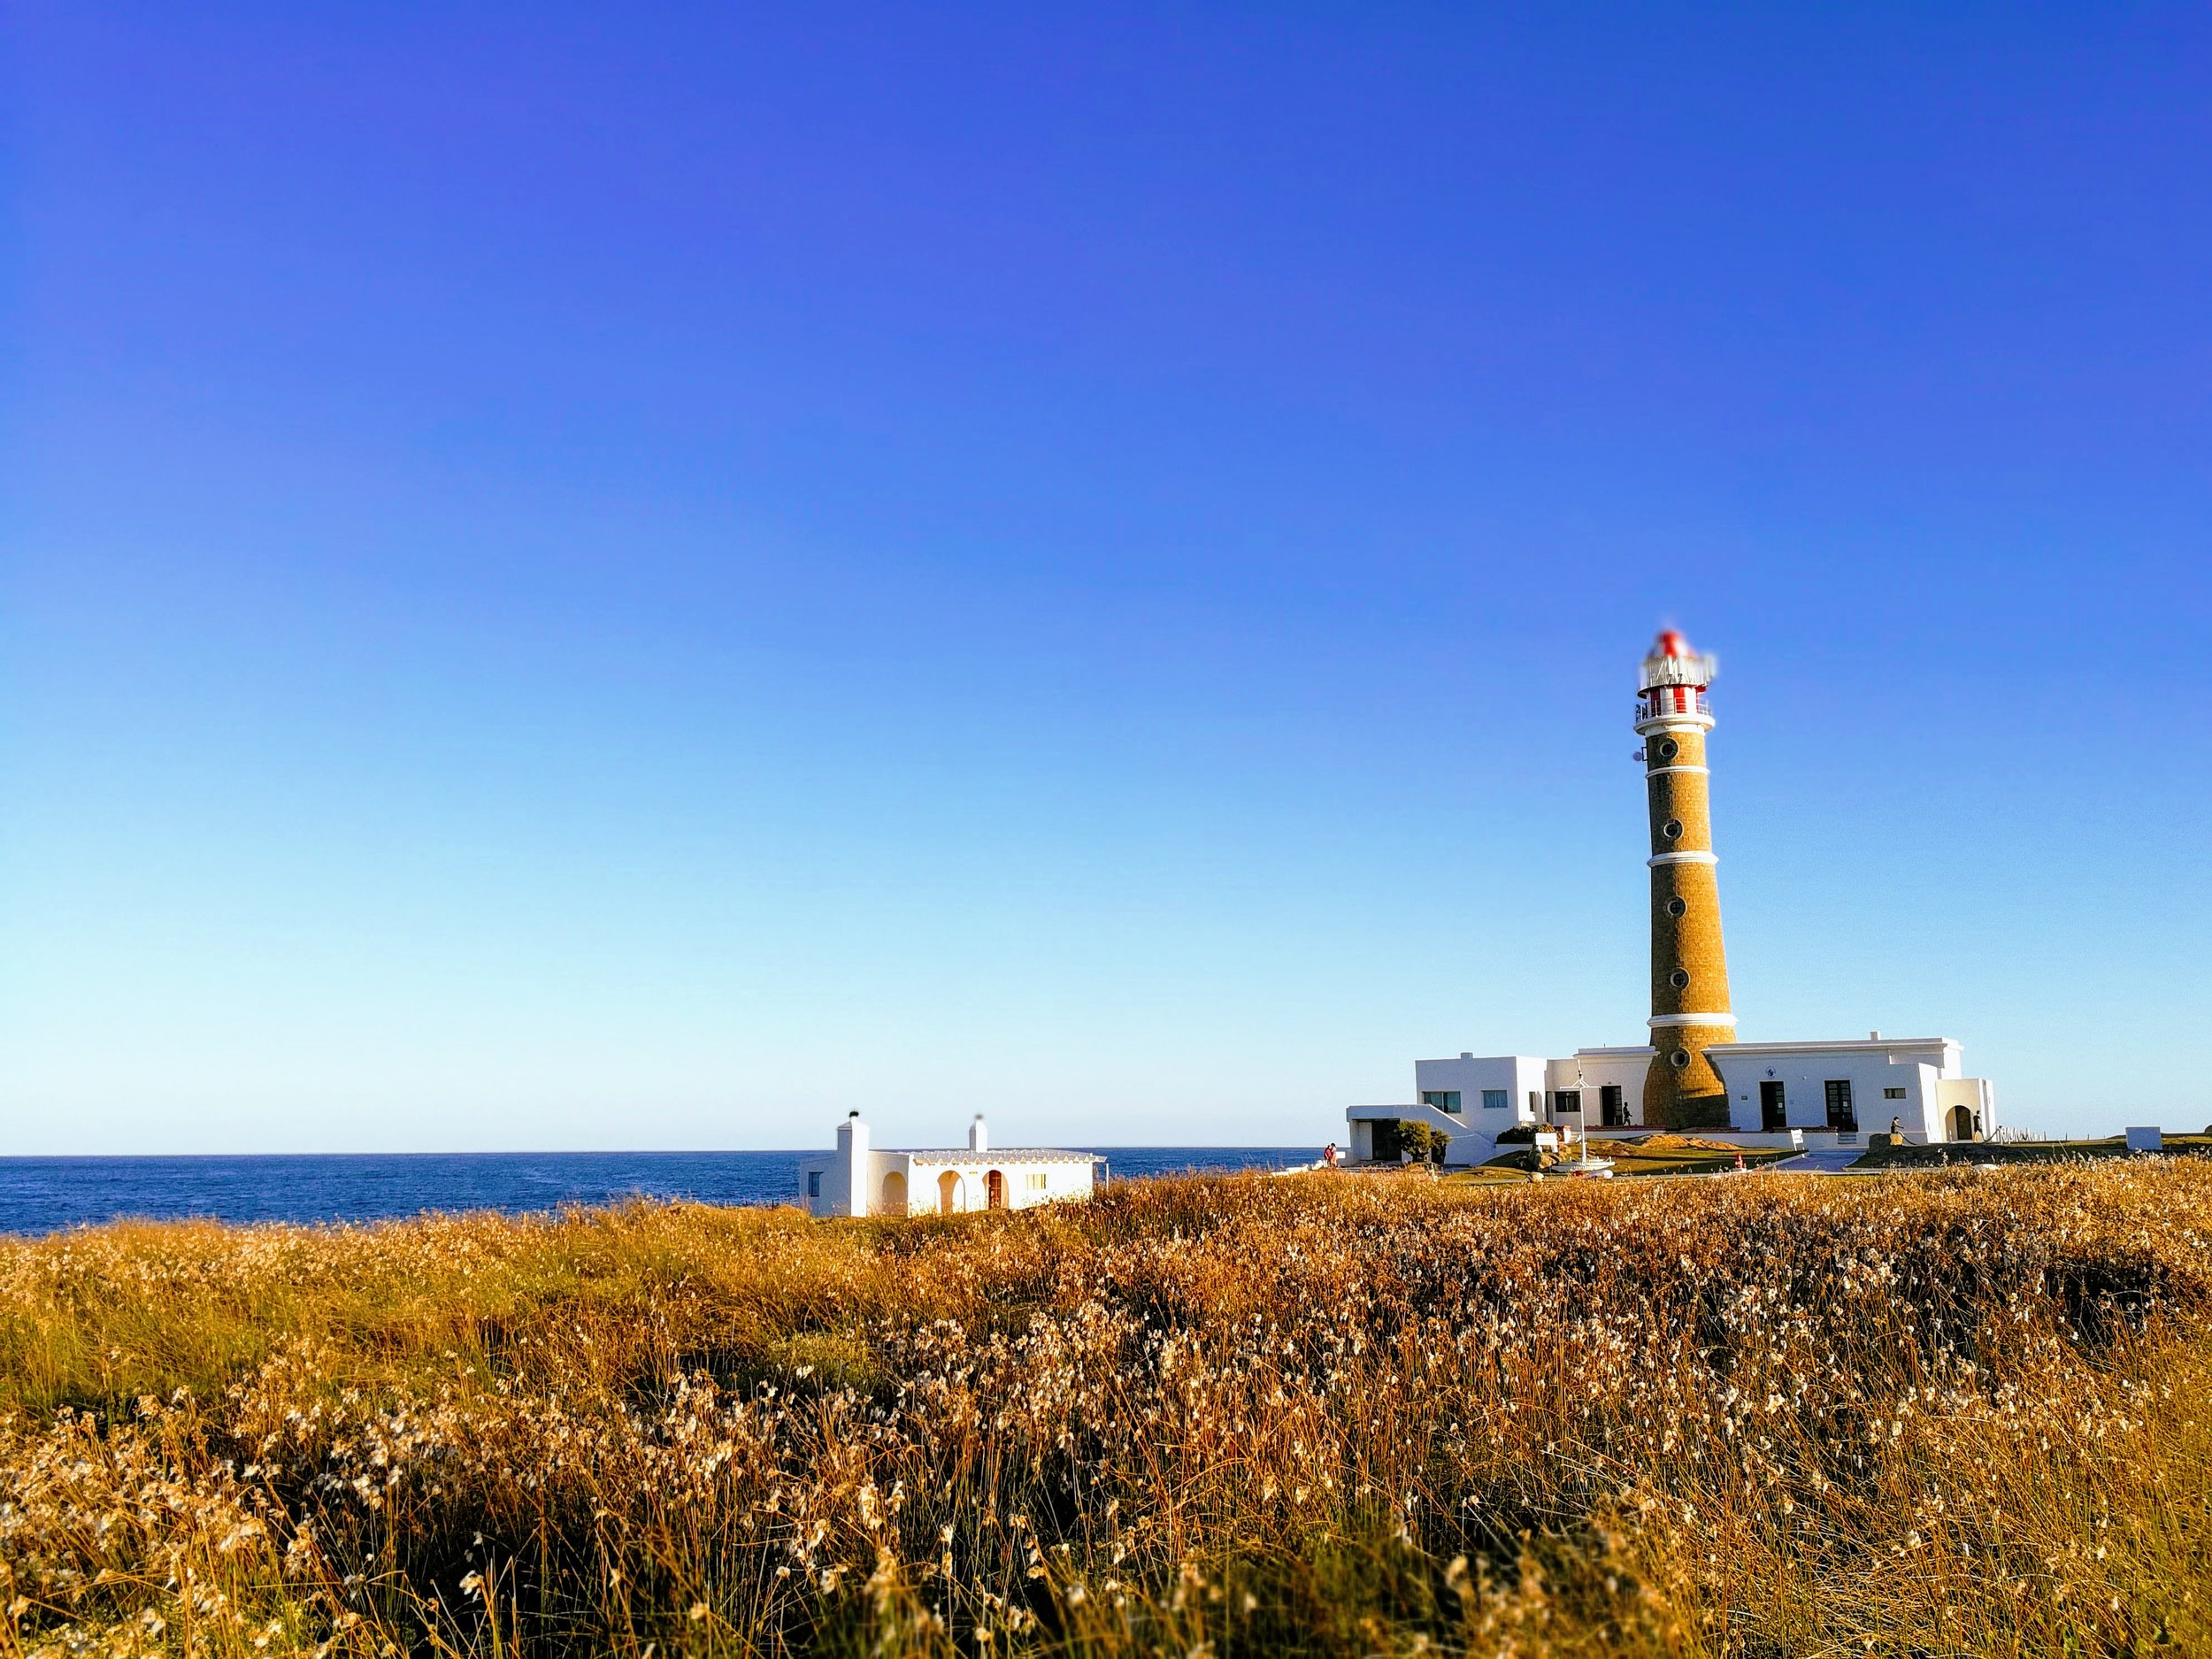 Cabo Polonio is famous for its lighthouse constructed in 1880 to deter potential shipwrecks from crashing into the peninsula.